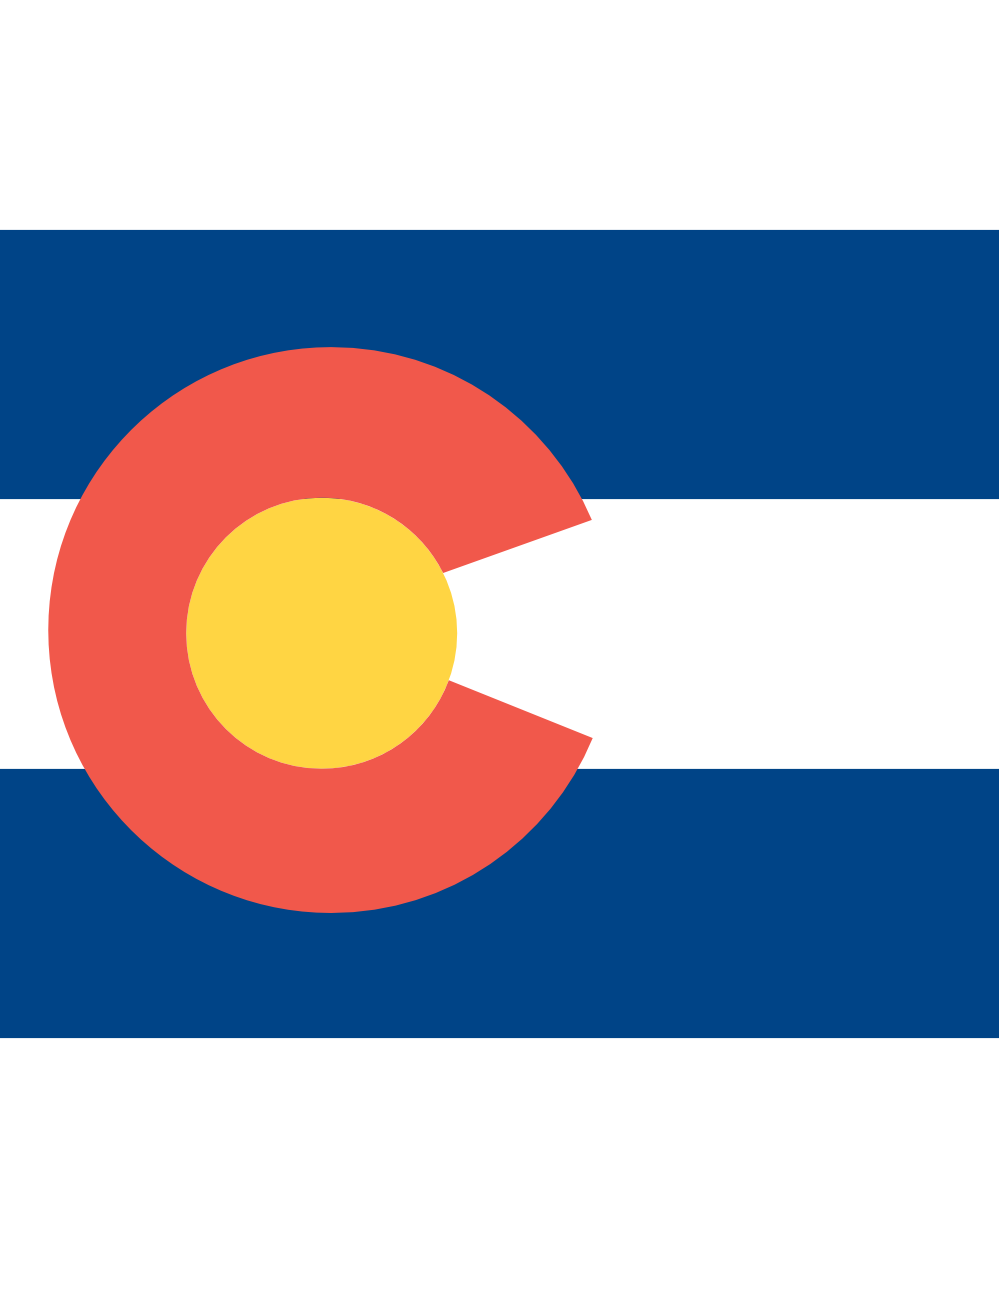 colorado flag vector clipart clipart panda free clipart images rh clipartpanda com Colorado Flag Outline colorado state flag vector